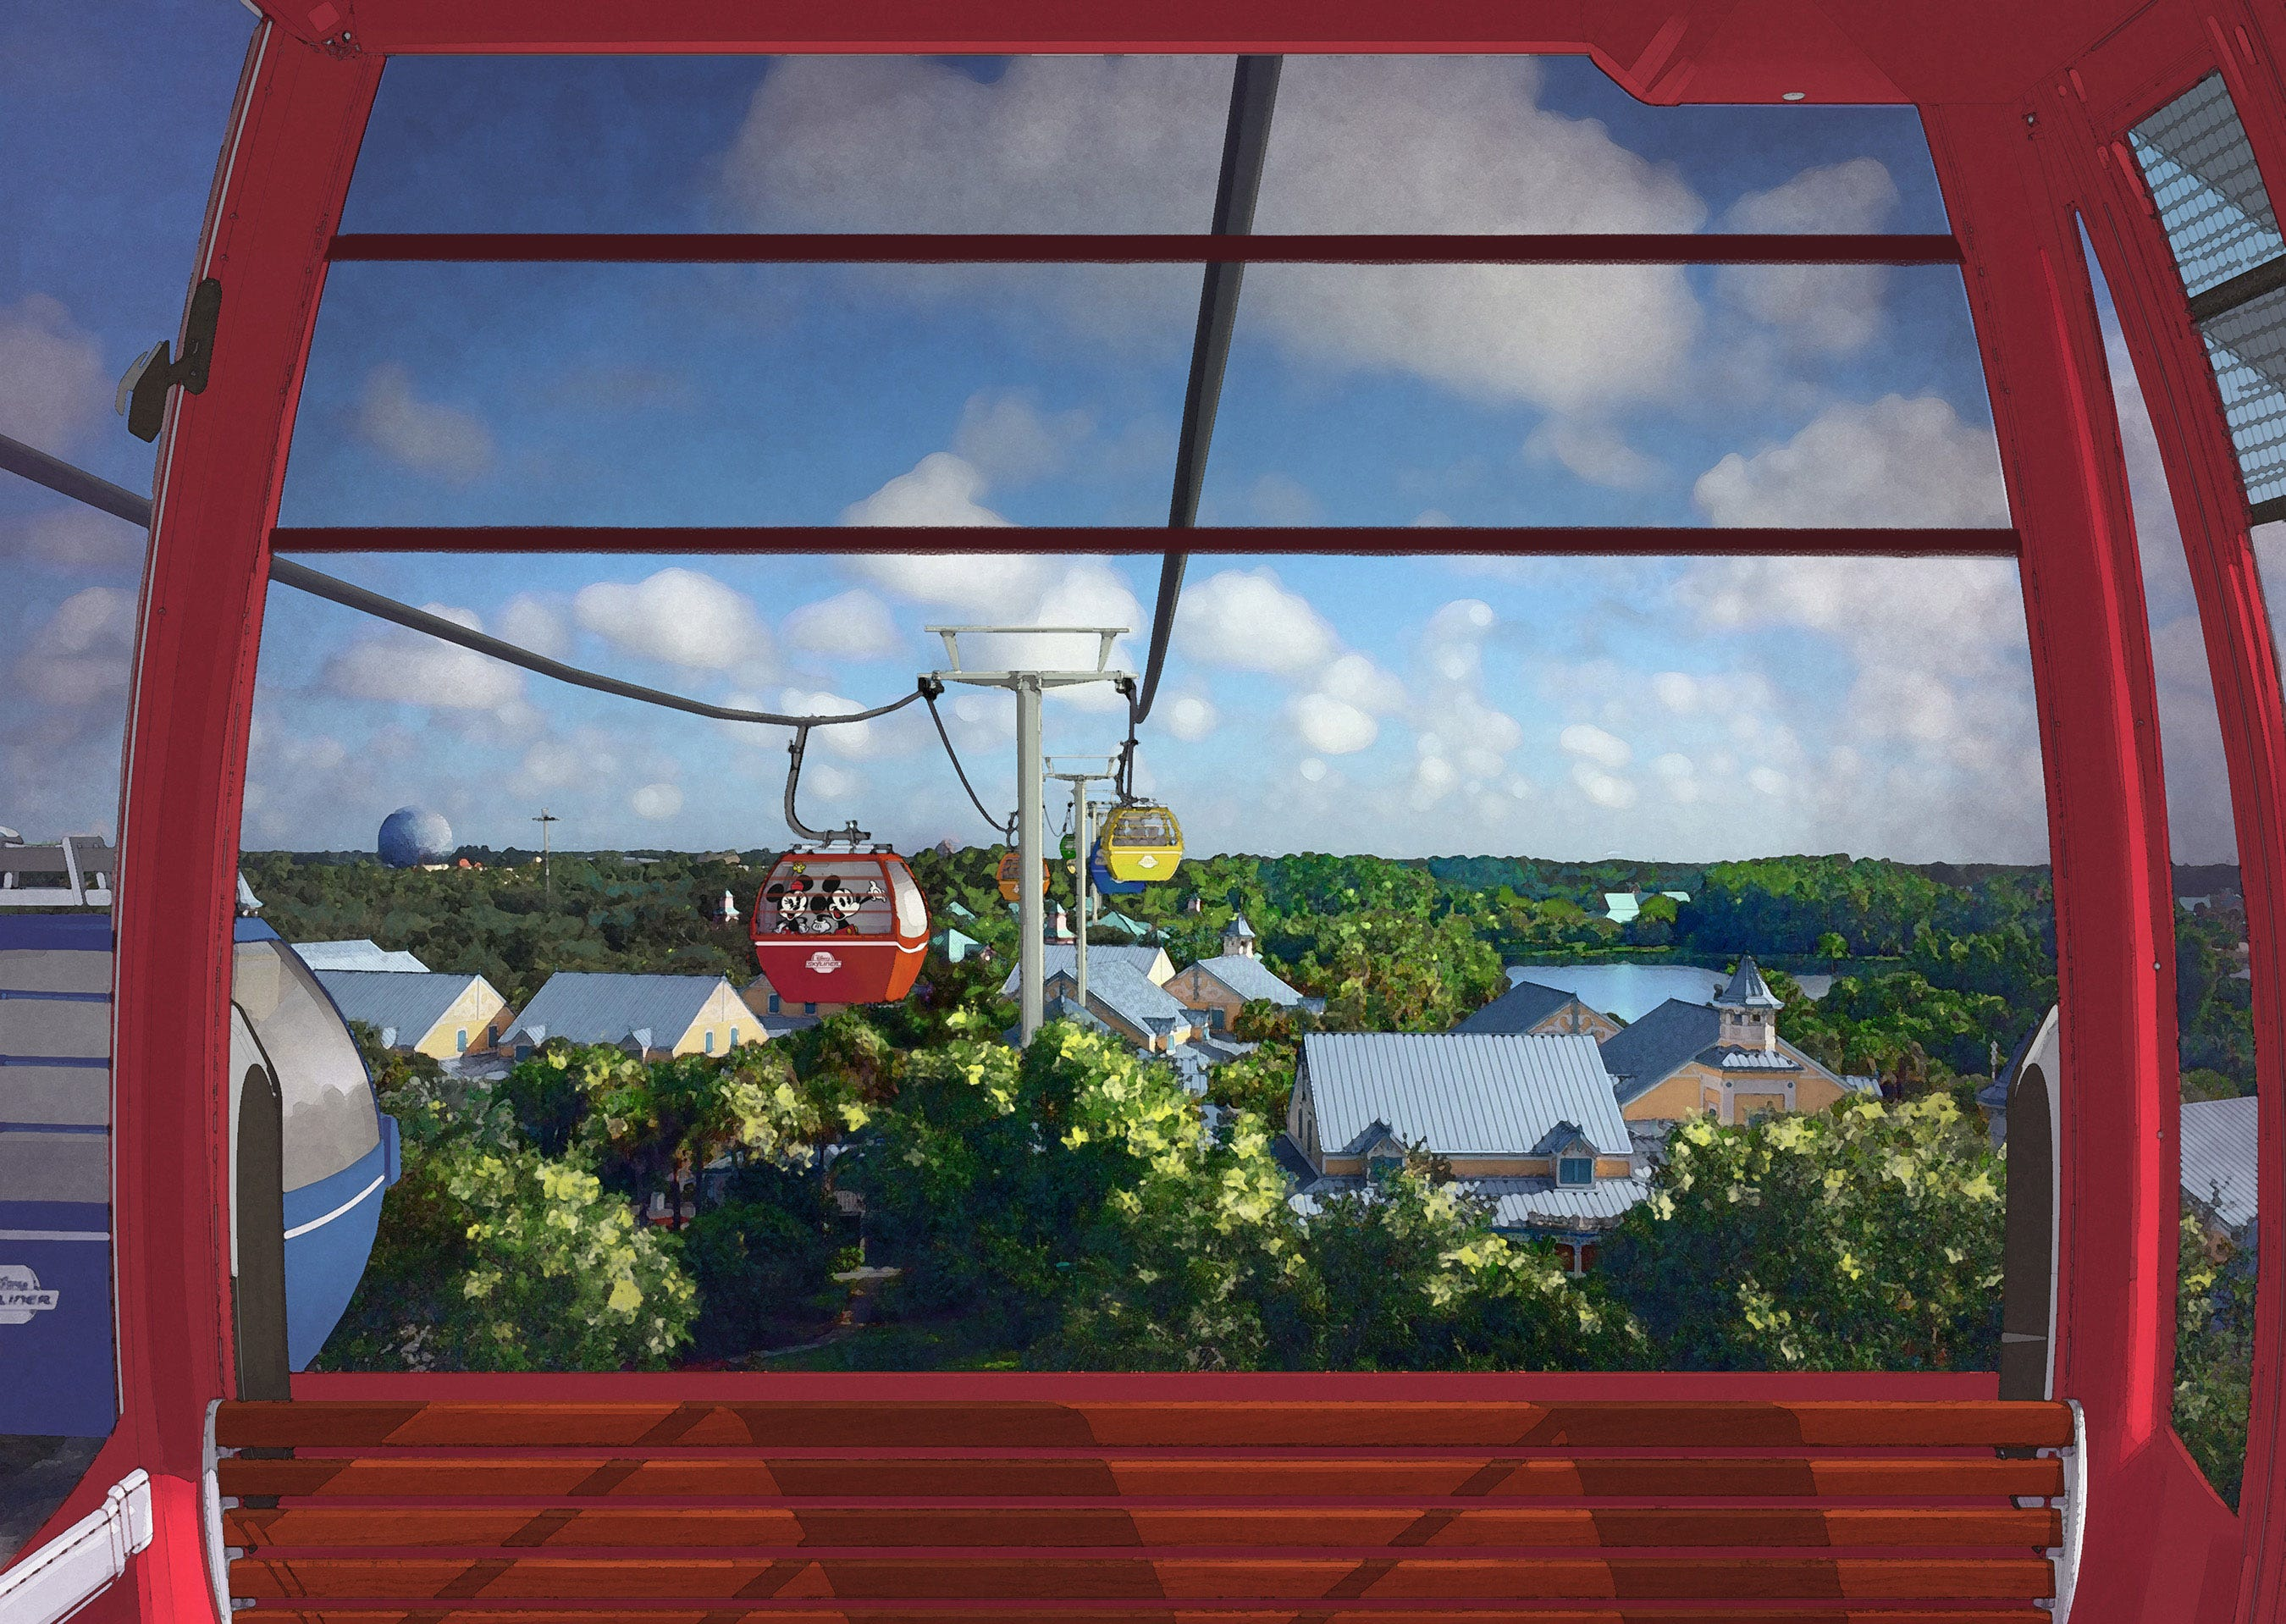 There will be a new way to get to Epcot along with Disney's Hollywood Studios next year when the resort opens its new Skyliner transportation system in the fall.